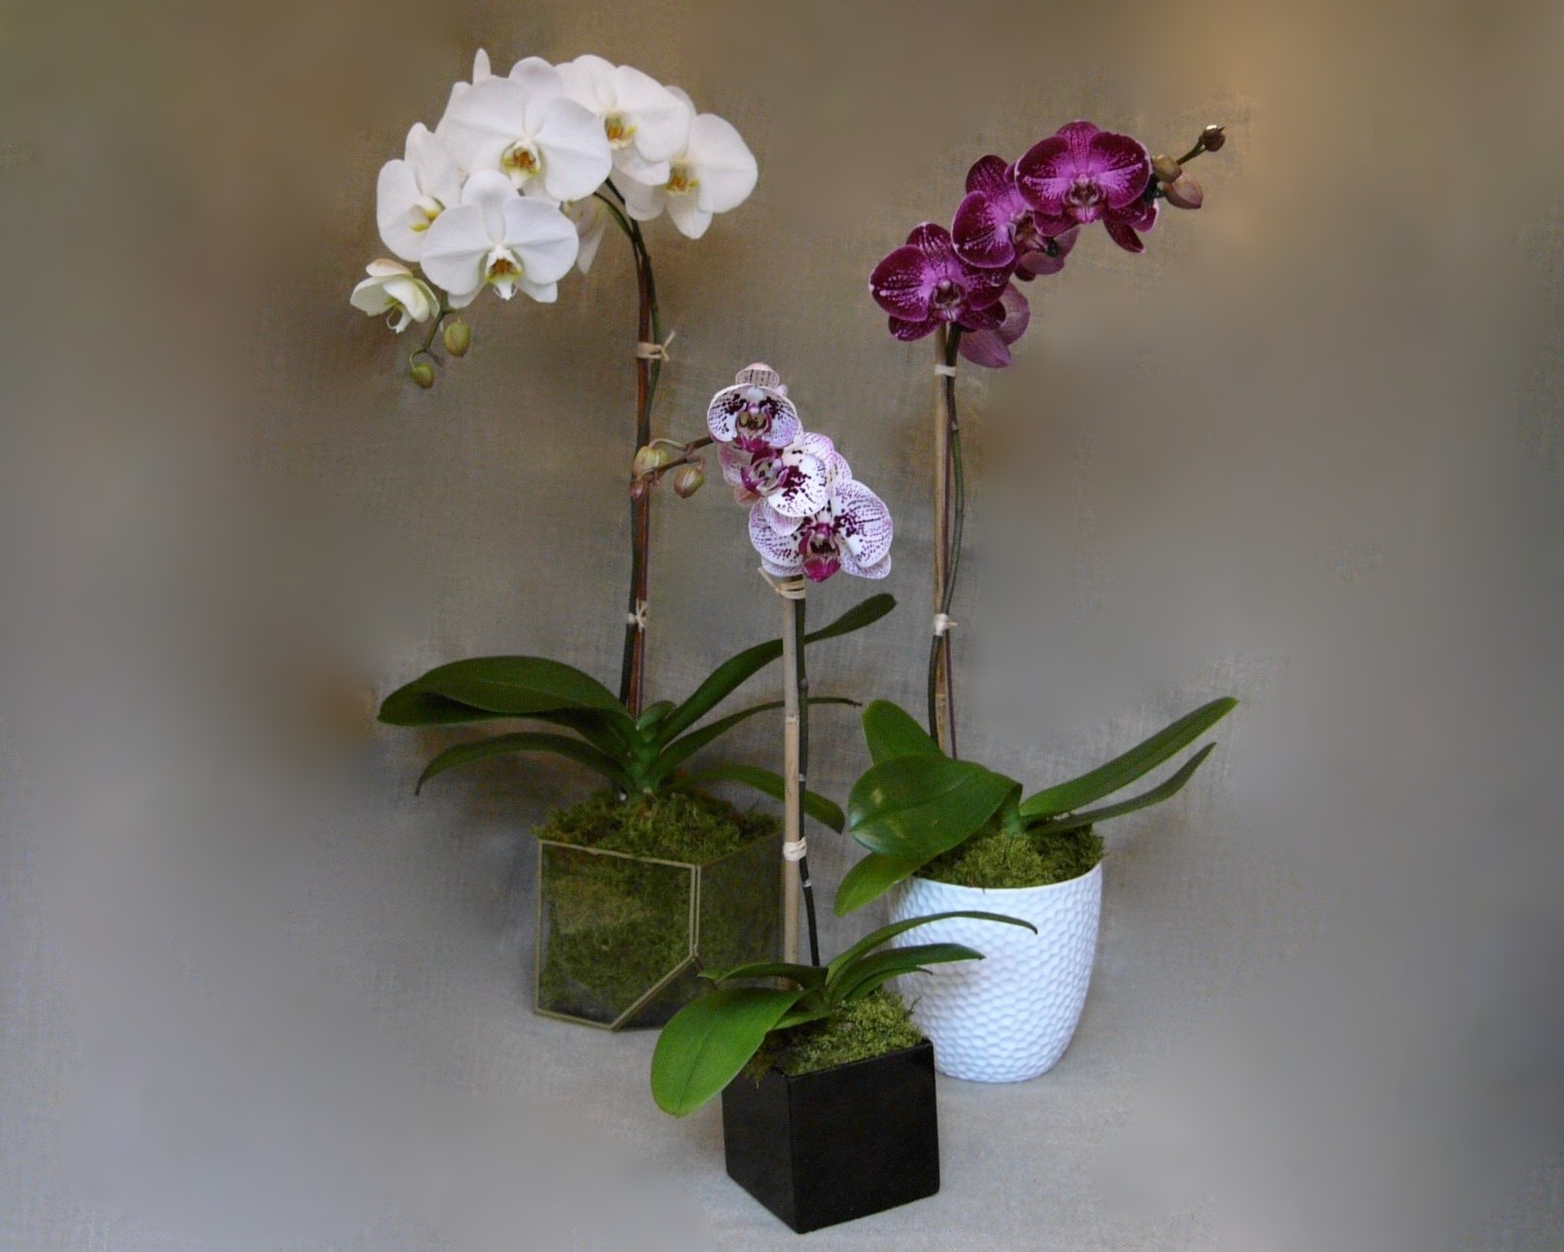 Phalaenopsis orchid plants in decorative containers.jpg